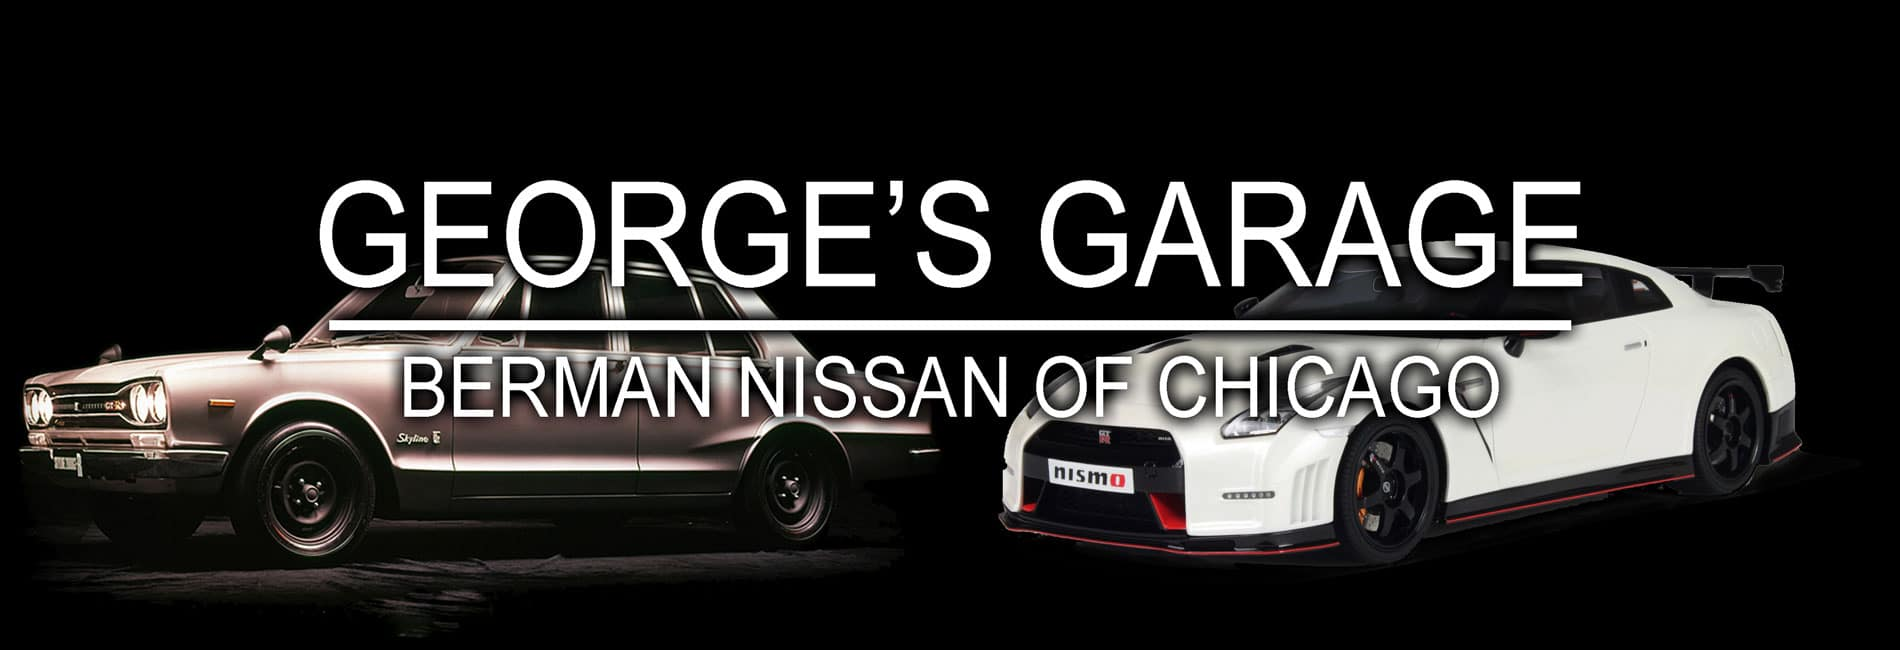 George's Garage at Berman Nissan of Chicago